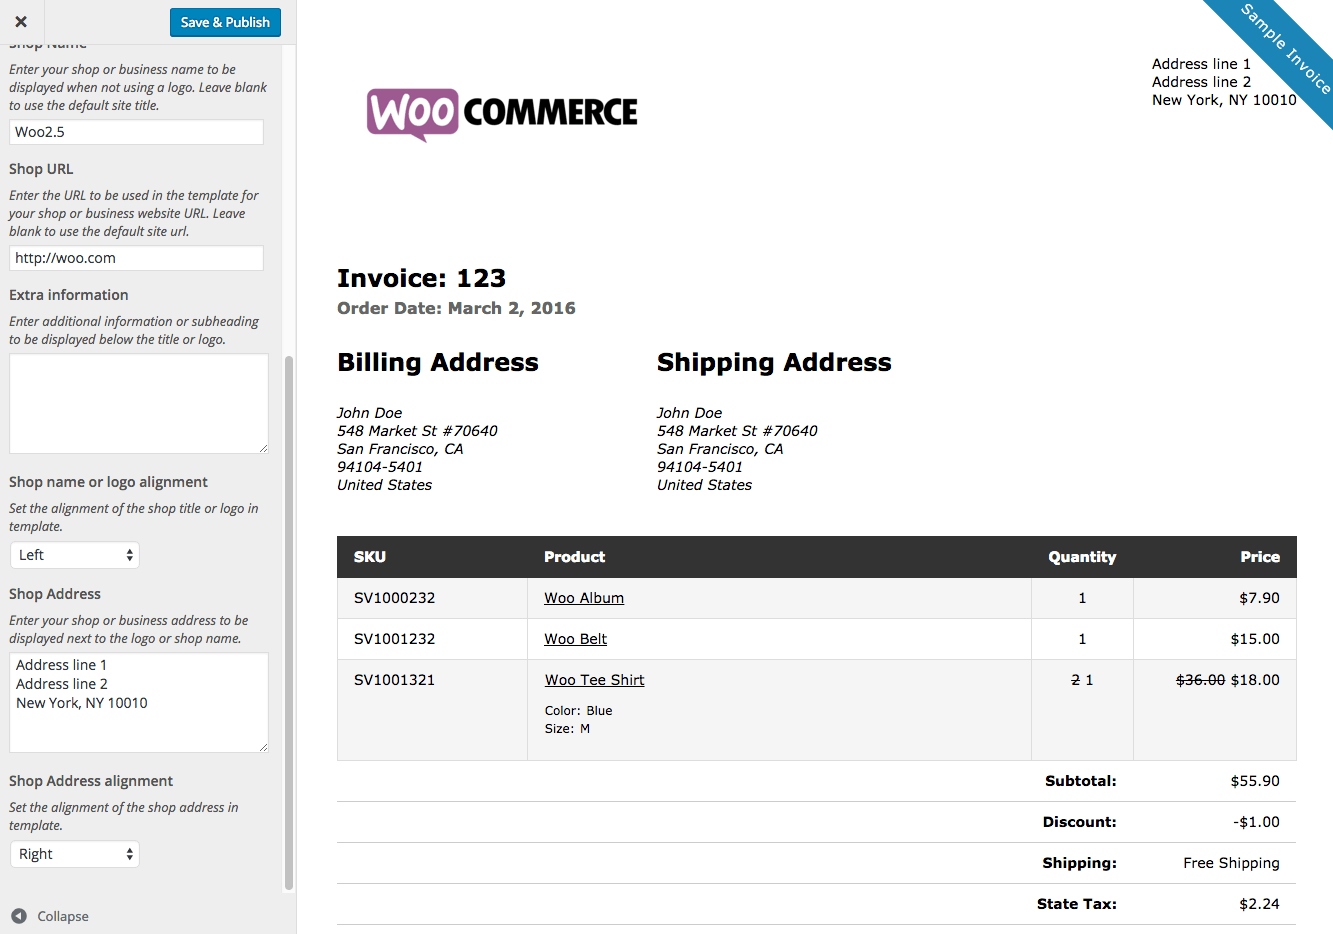 Roundshotus  Outstanding Woocommerce Print Invoices Amp Packing Lists  Woocommerce Docs With Heavenly Woocommerce Print Invoices  Packing Lists Customizer With Archaic Sponsored Depositary Receipts Also Sloppy Joe Receipt In Addition Sample Official Receipt Template And Taxi Cab Receipt Blank As Well As Rent Receipt Template Download Additionally Petty Cash Receipt Sample From Docswoocommercecom With Roundshotus  Heavenly Woocommerce Print Invoices Amp Packing Lists  Woocommerce Docs With Archaic Woocommerce Print Invoices  Packing Lists Customizer And Outstanding Sponsored Depositary Receipts Also Sloppy Joe Receipt In Addition Sample Official Receipt Template From Docswoocommercecom